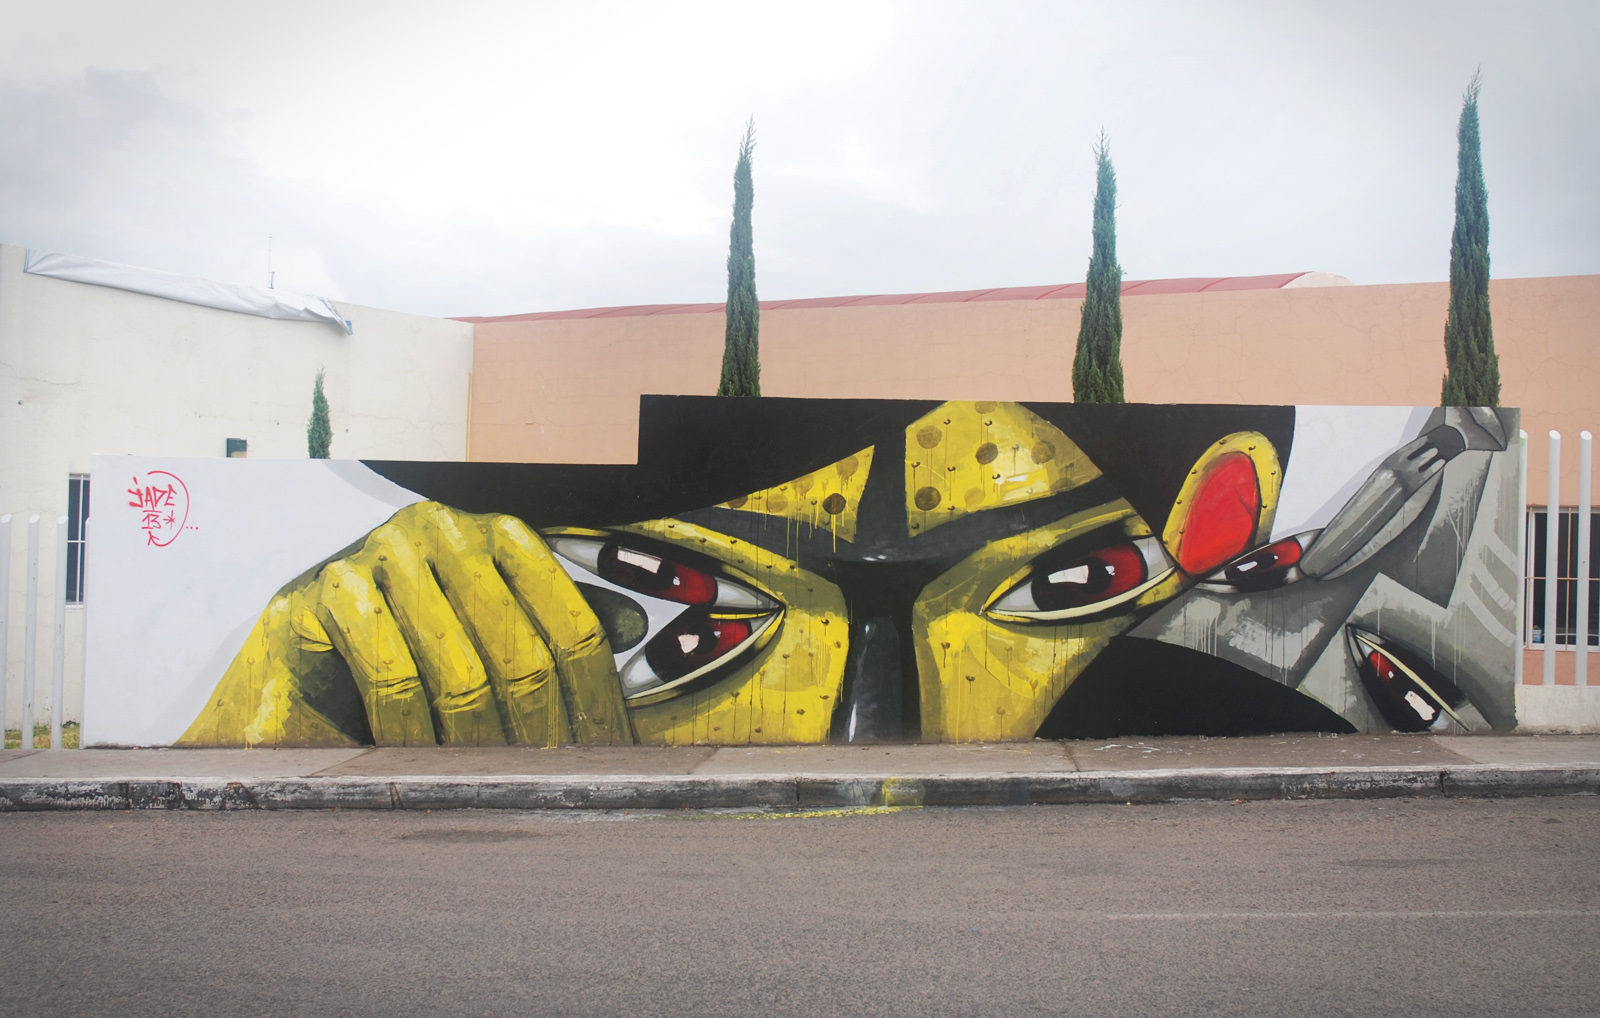 jade-absorber-una-mascara-mexicana-new-mural-in-queretaro-01